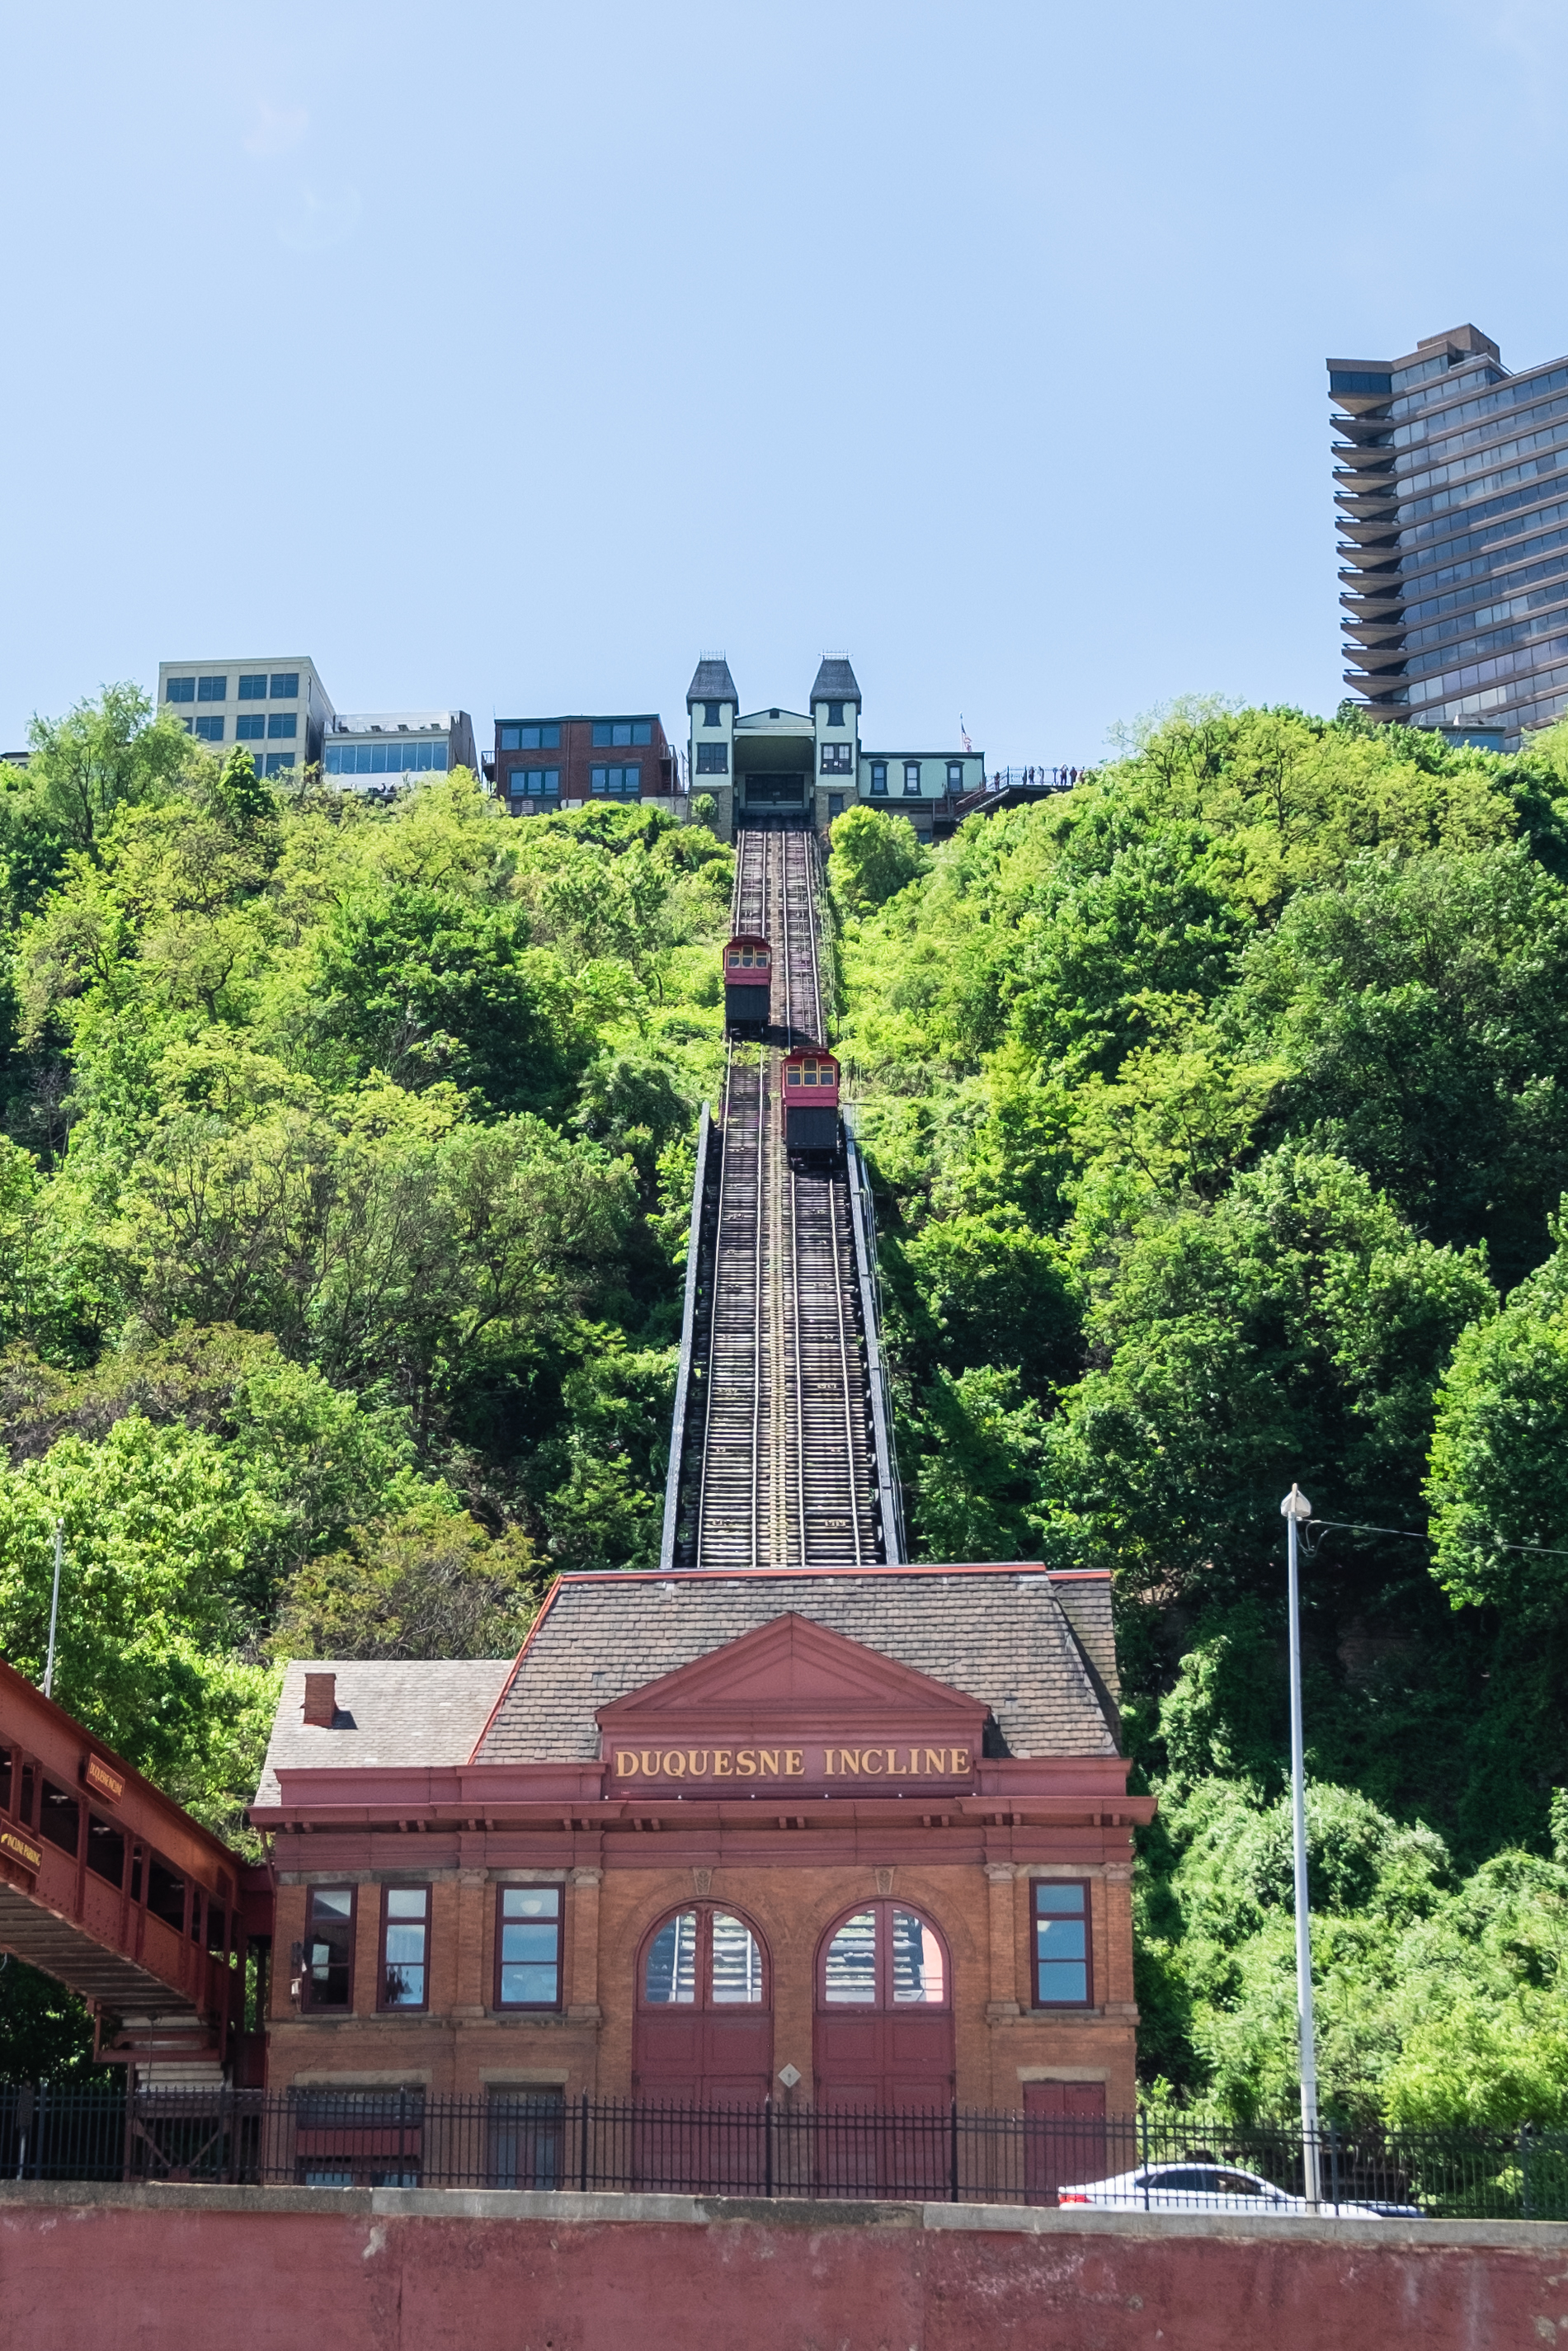 The Duquesne Incline!